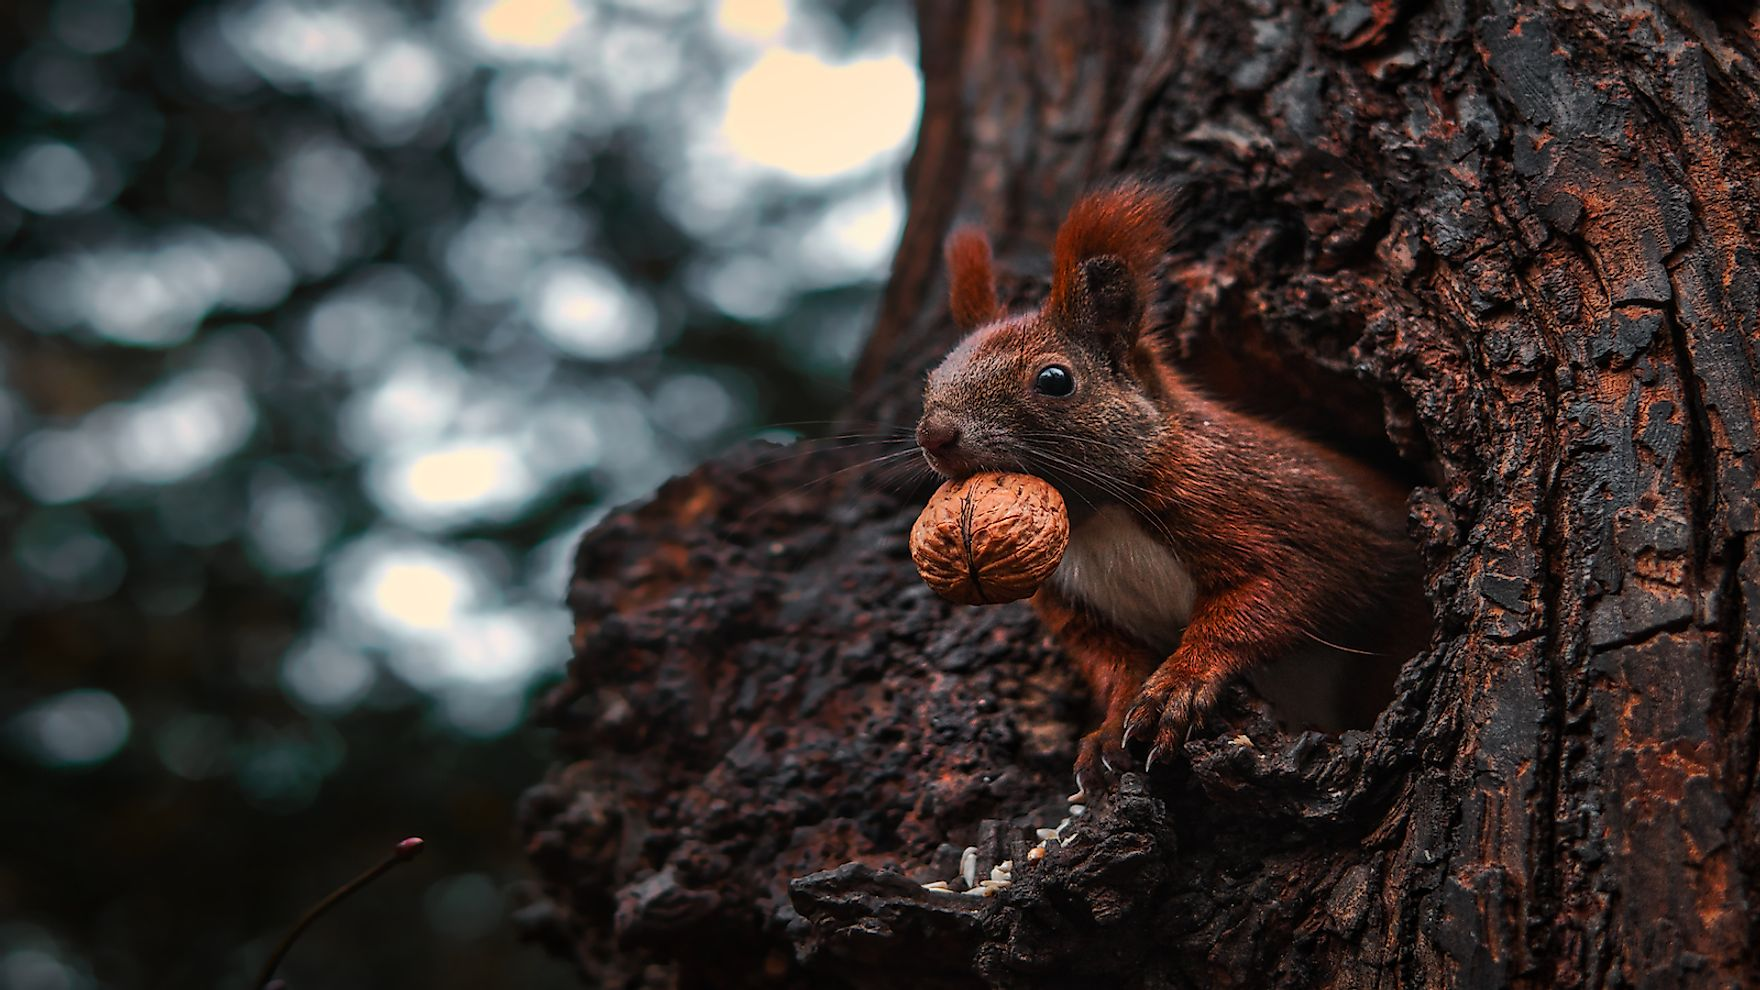 A red squirrel hoarding nuts in a tree hollow.